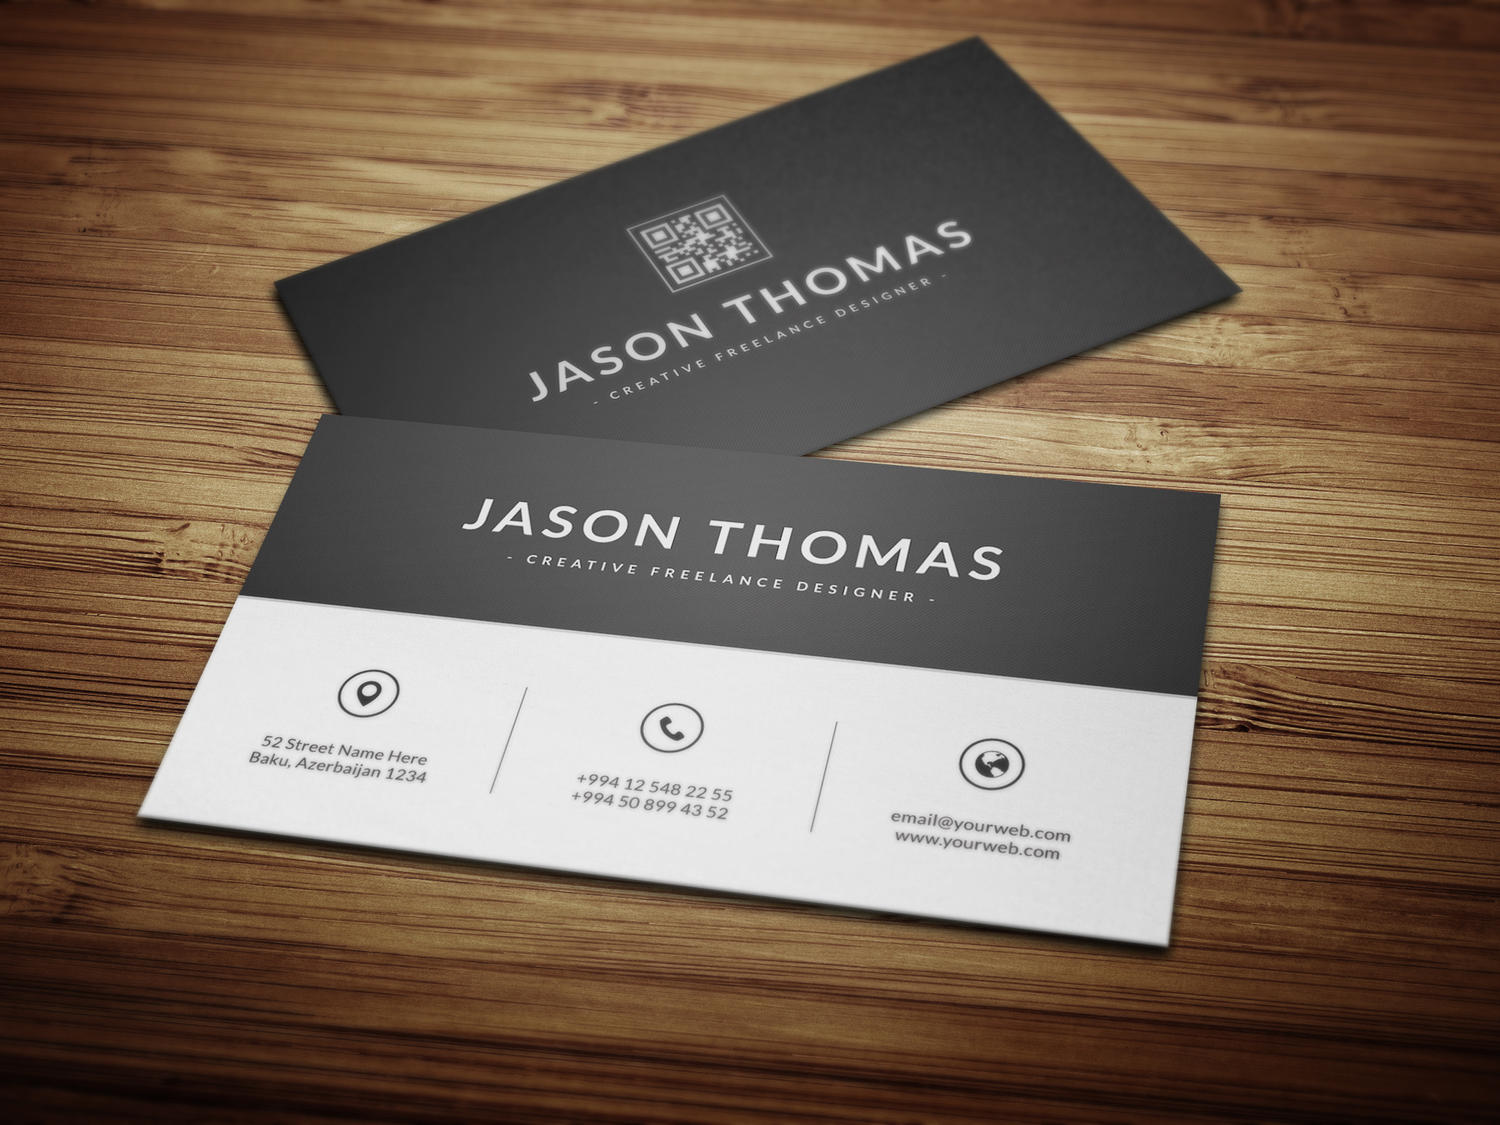 Cool business card designs idealstalist cool business card designs reheart Image collections